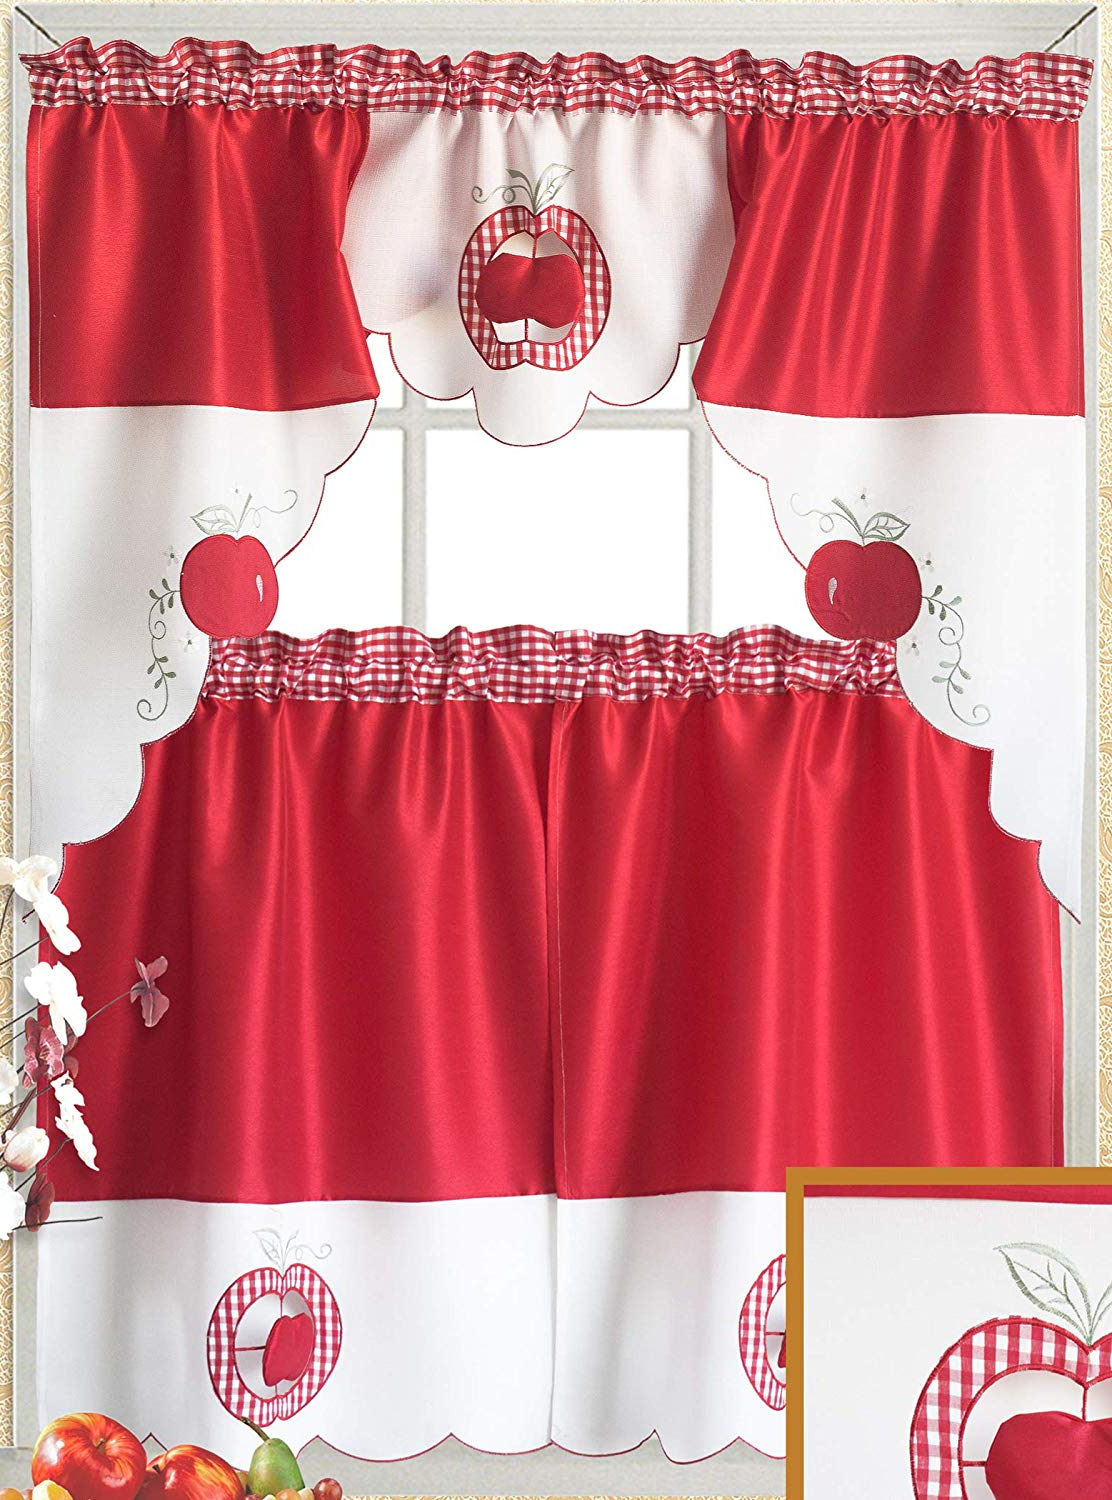 [%amazon: Just Enjoy Lace 100% Polyester White Red Color With Regard To Recent Red Delicious Apple 3 Piece Curtain Tiers|red Delicious Apple 3 Piece Curtain Tiers Throughout 2021 Amazon: Just Enjoy Lace 100% Polyester White Red Color|widely Used Red Delicious Apple 3 Piece Curtain Tiers Within Amazon: Just Enjoy Lace 100% Polyester White Red Color|well Known Amazon: Just Enjoy Lace 100% Polyester White Red Color Regarding Red Delicious Apple 3 Piece Curtain Tiers%] (View 12 of 20)